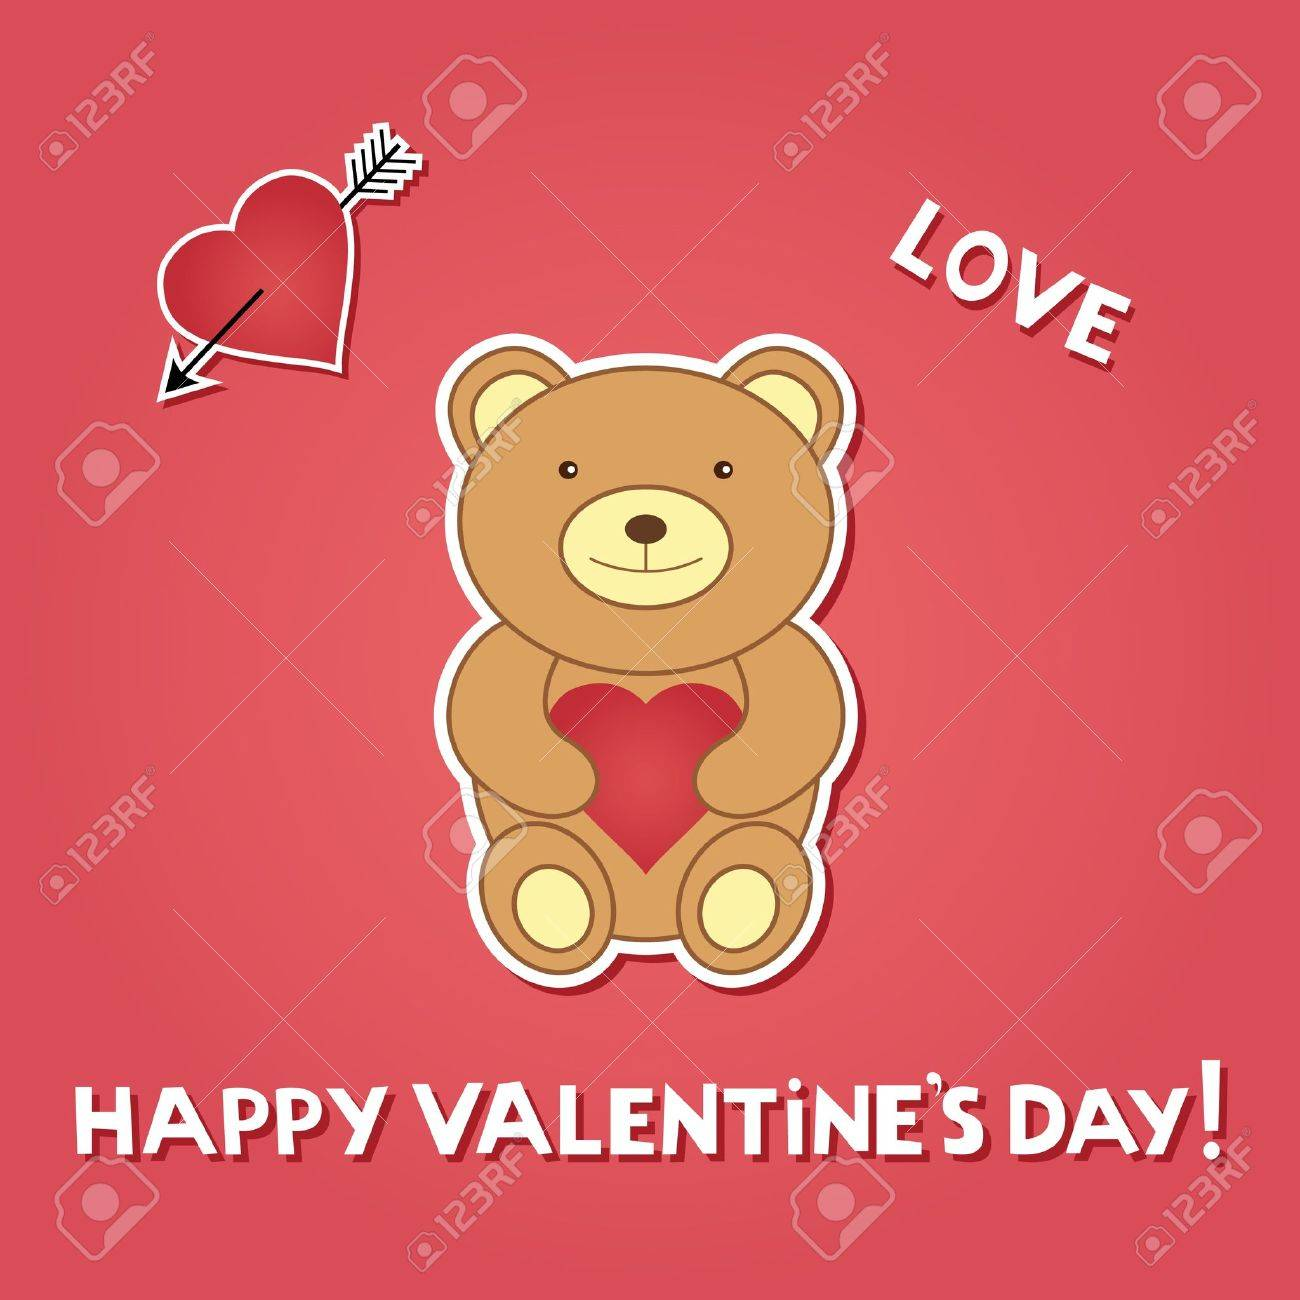 Valentine Card With Teddy Bear Royalty Free Cliparts Vectors And – Teddy Bear Valentines Day Card